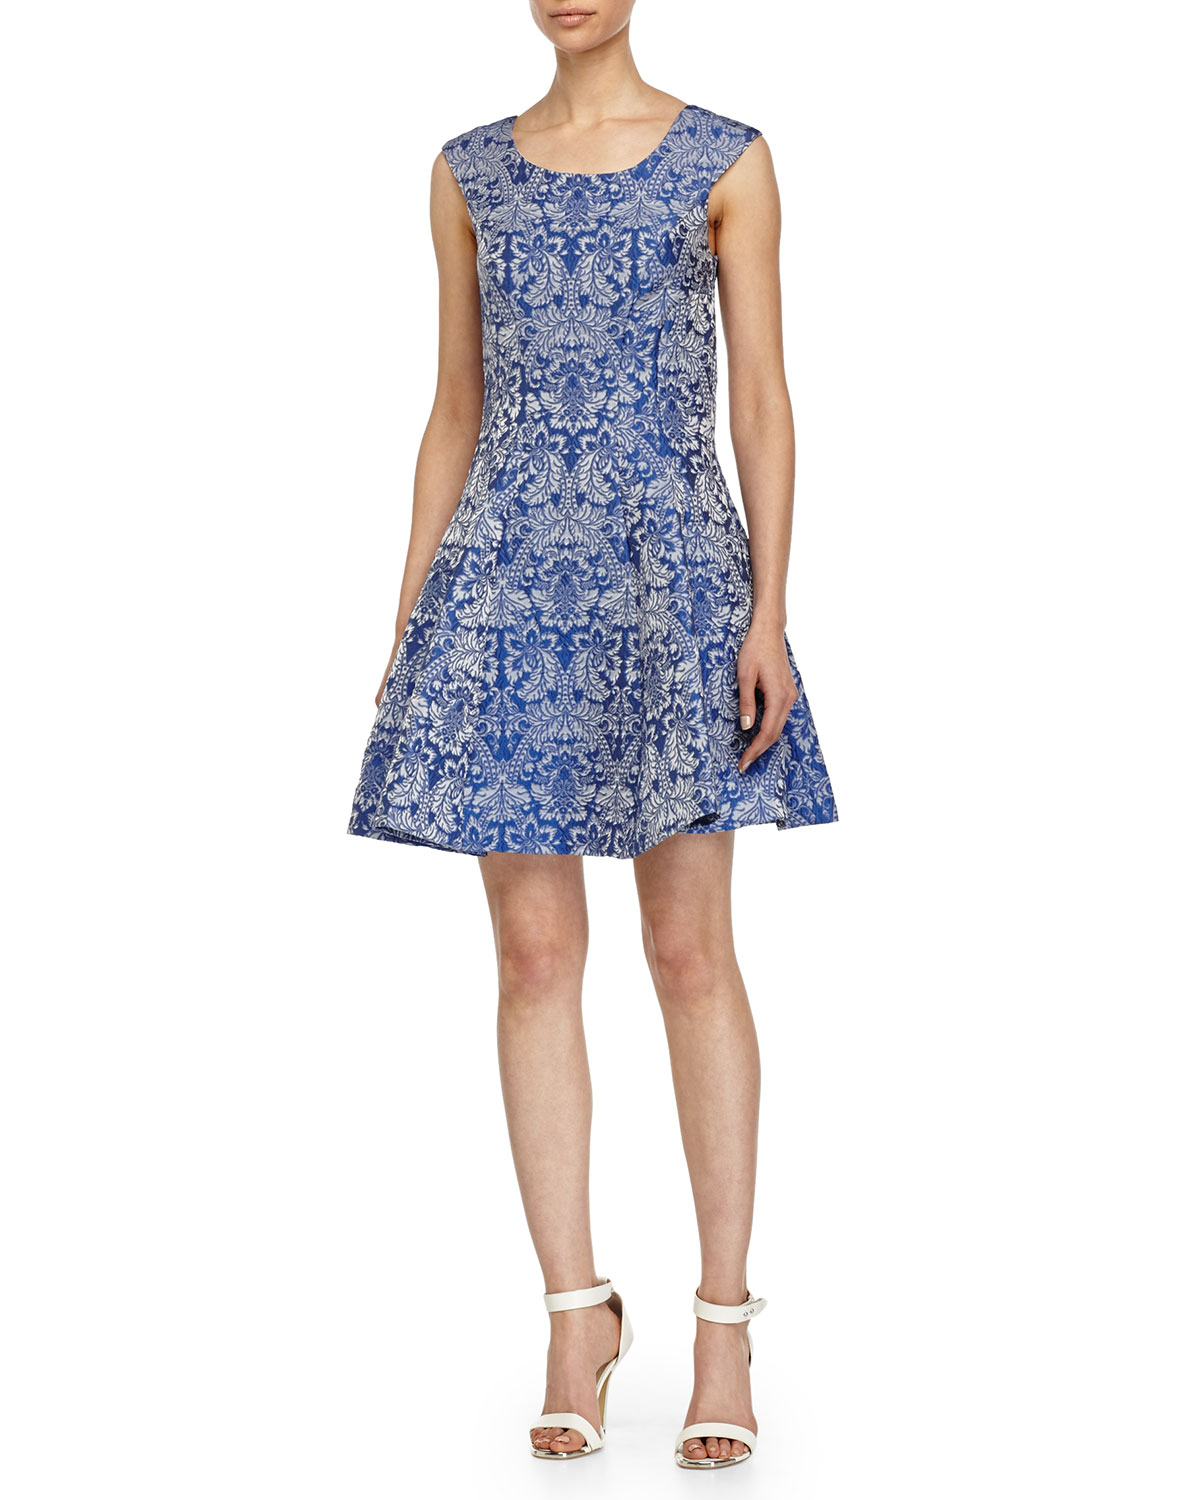 a07fa9ec8d9d Lyst - Betsey Johnson Baroque-Print Fit-And-Flare Dress in Blue